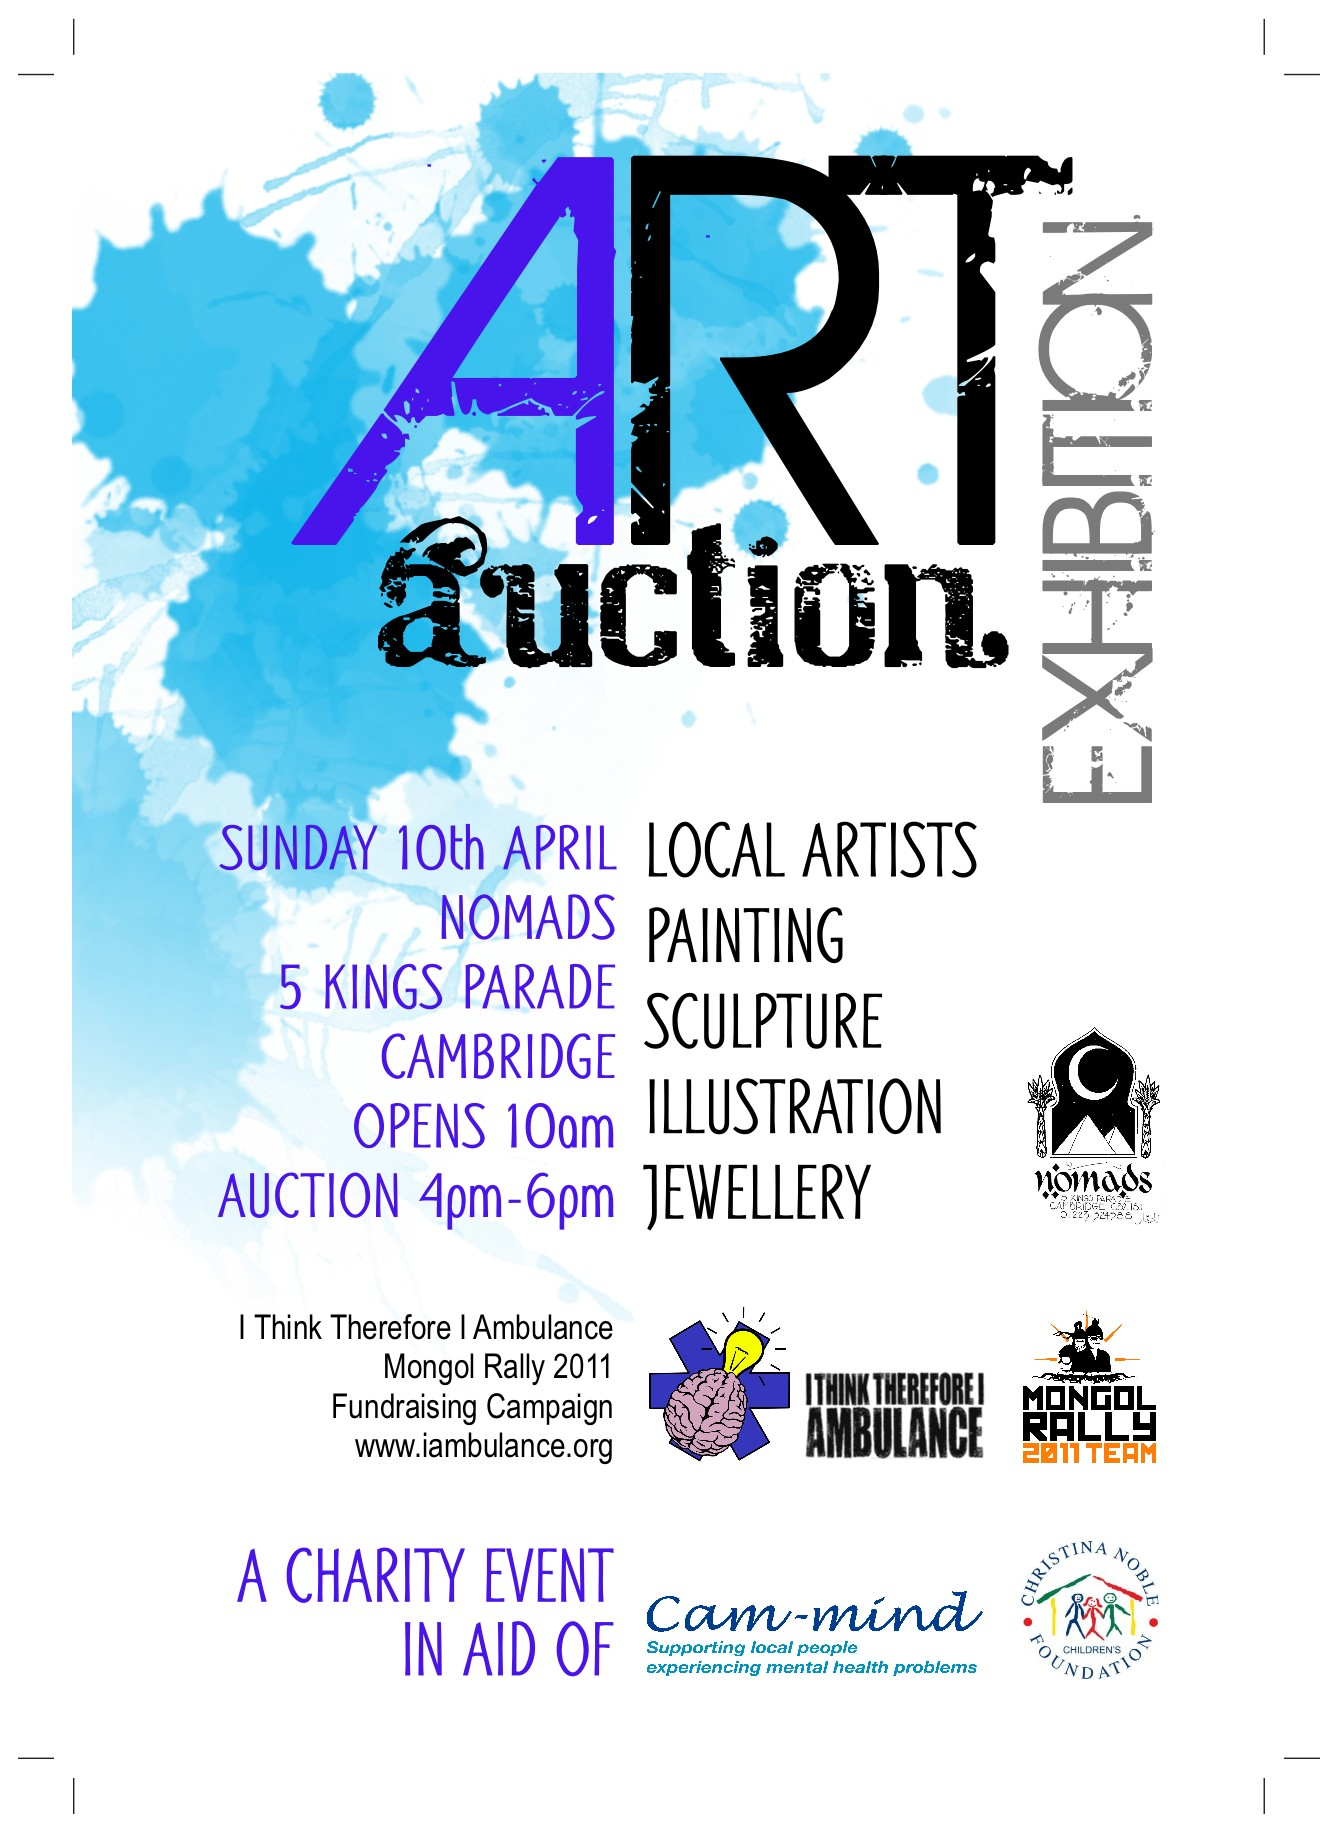 Charity Auction event at Nomads, Cambridge